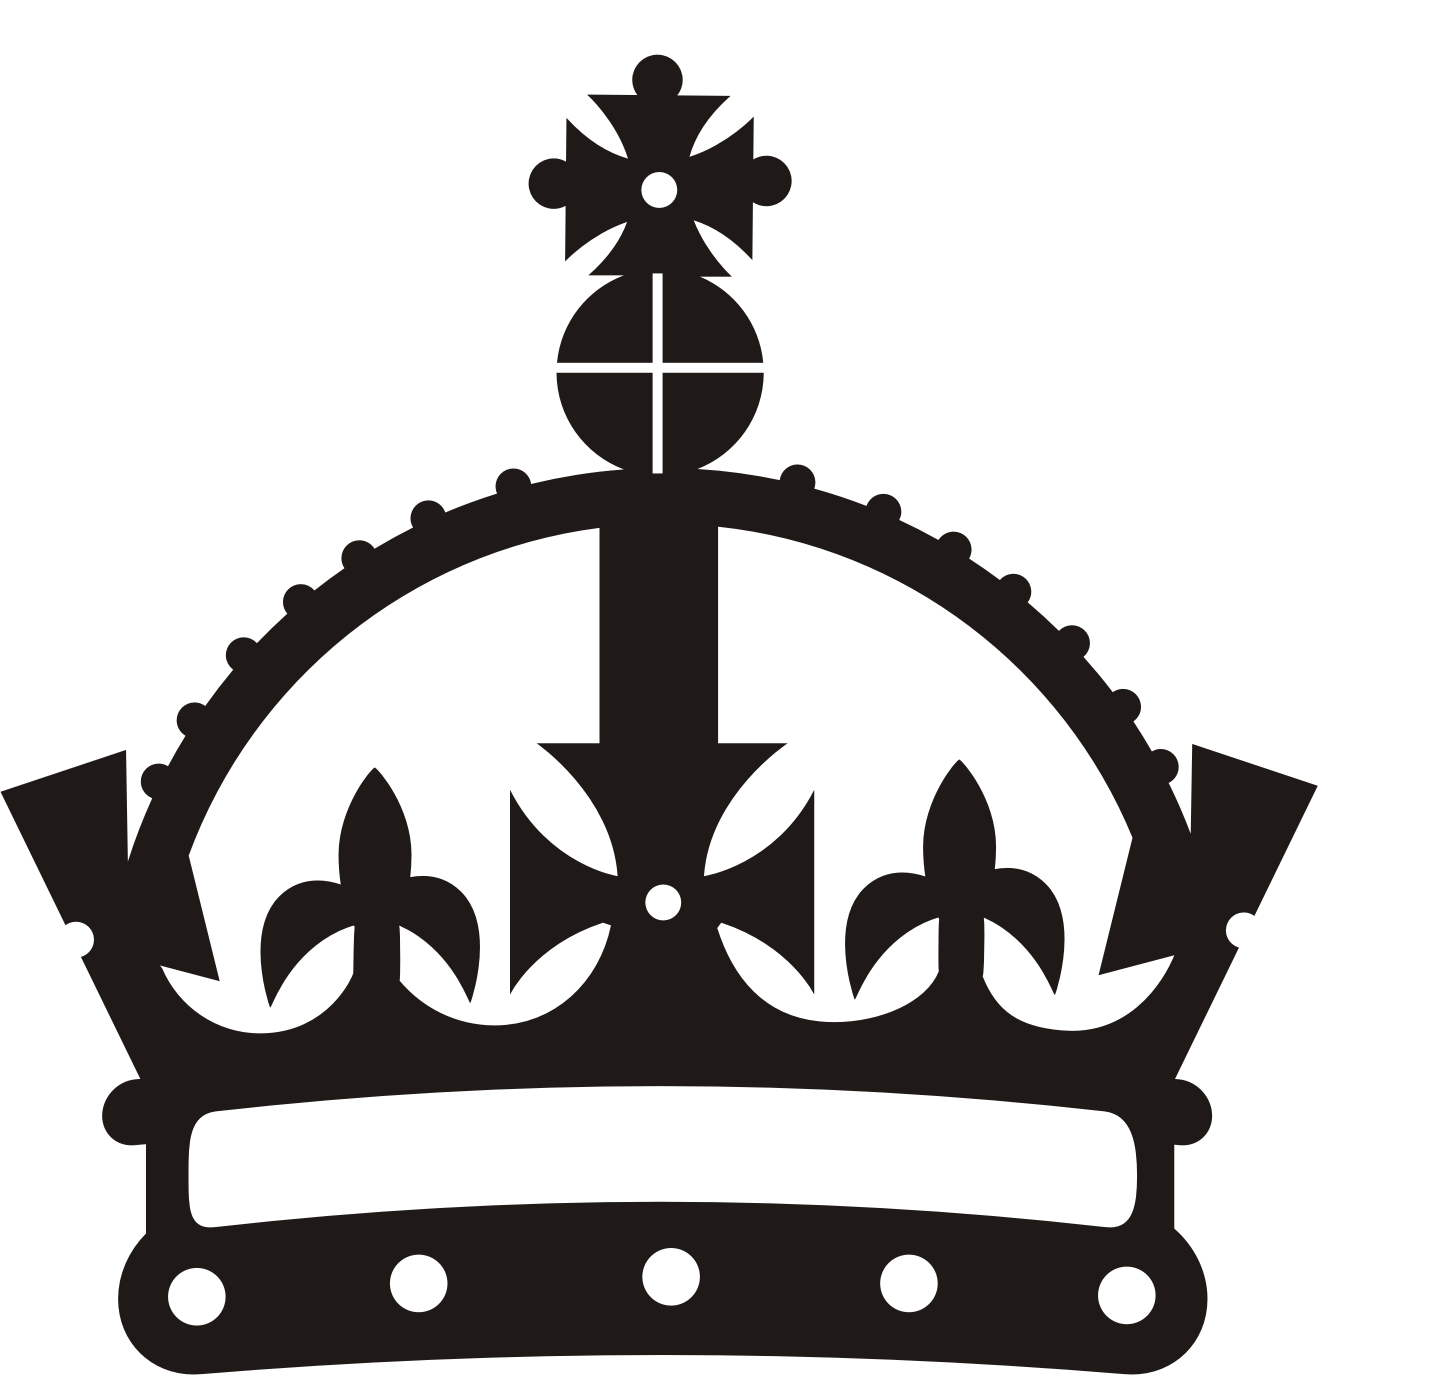 Crown clip art library. Queen clipart queen british